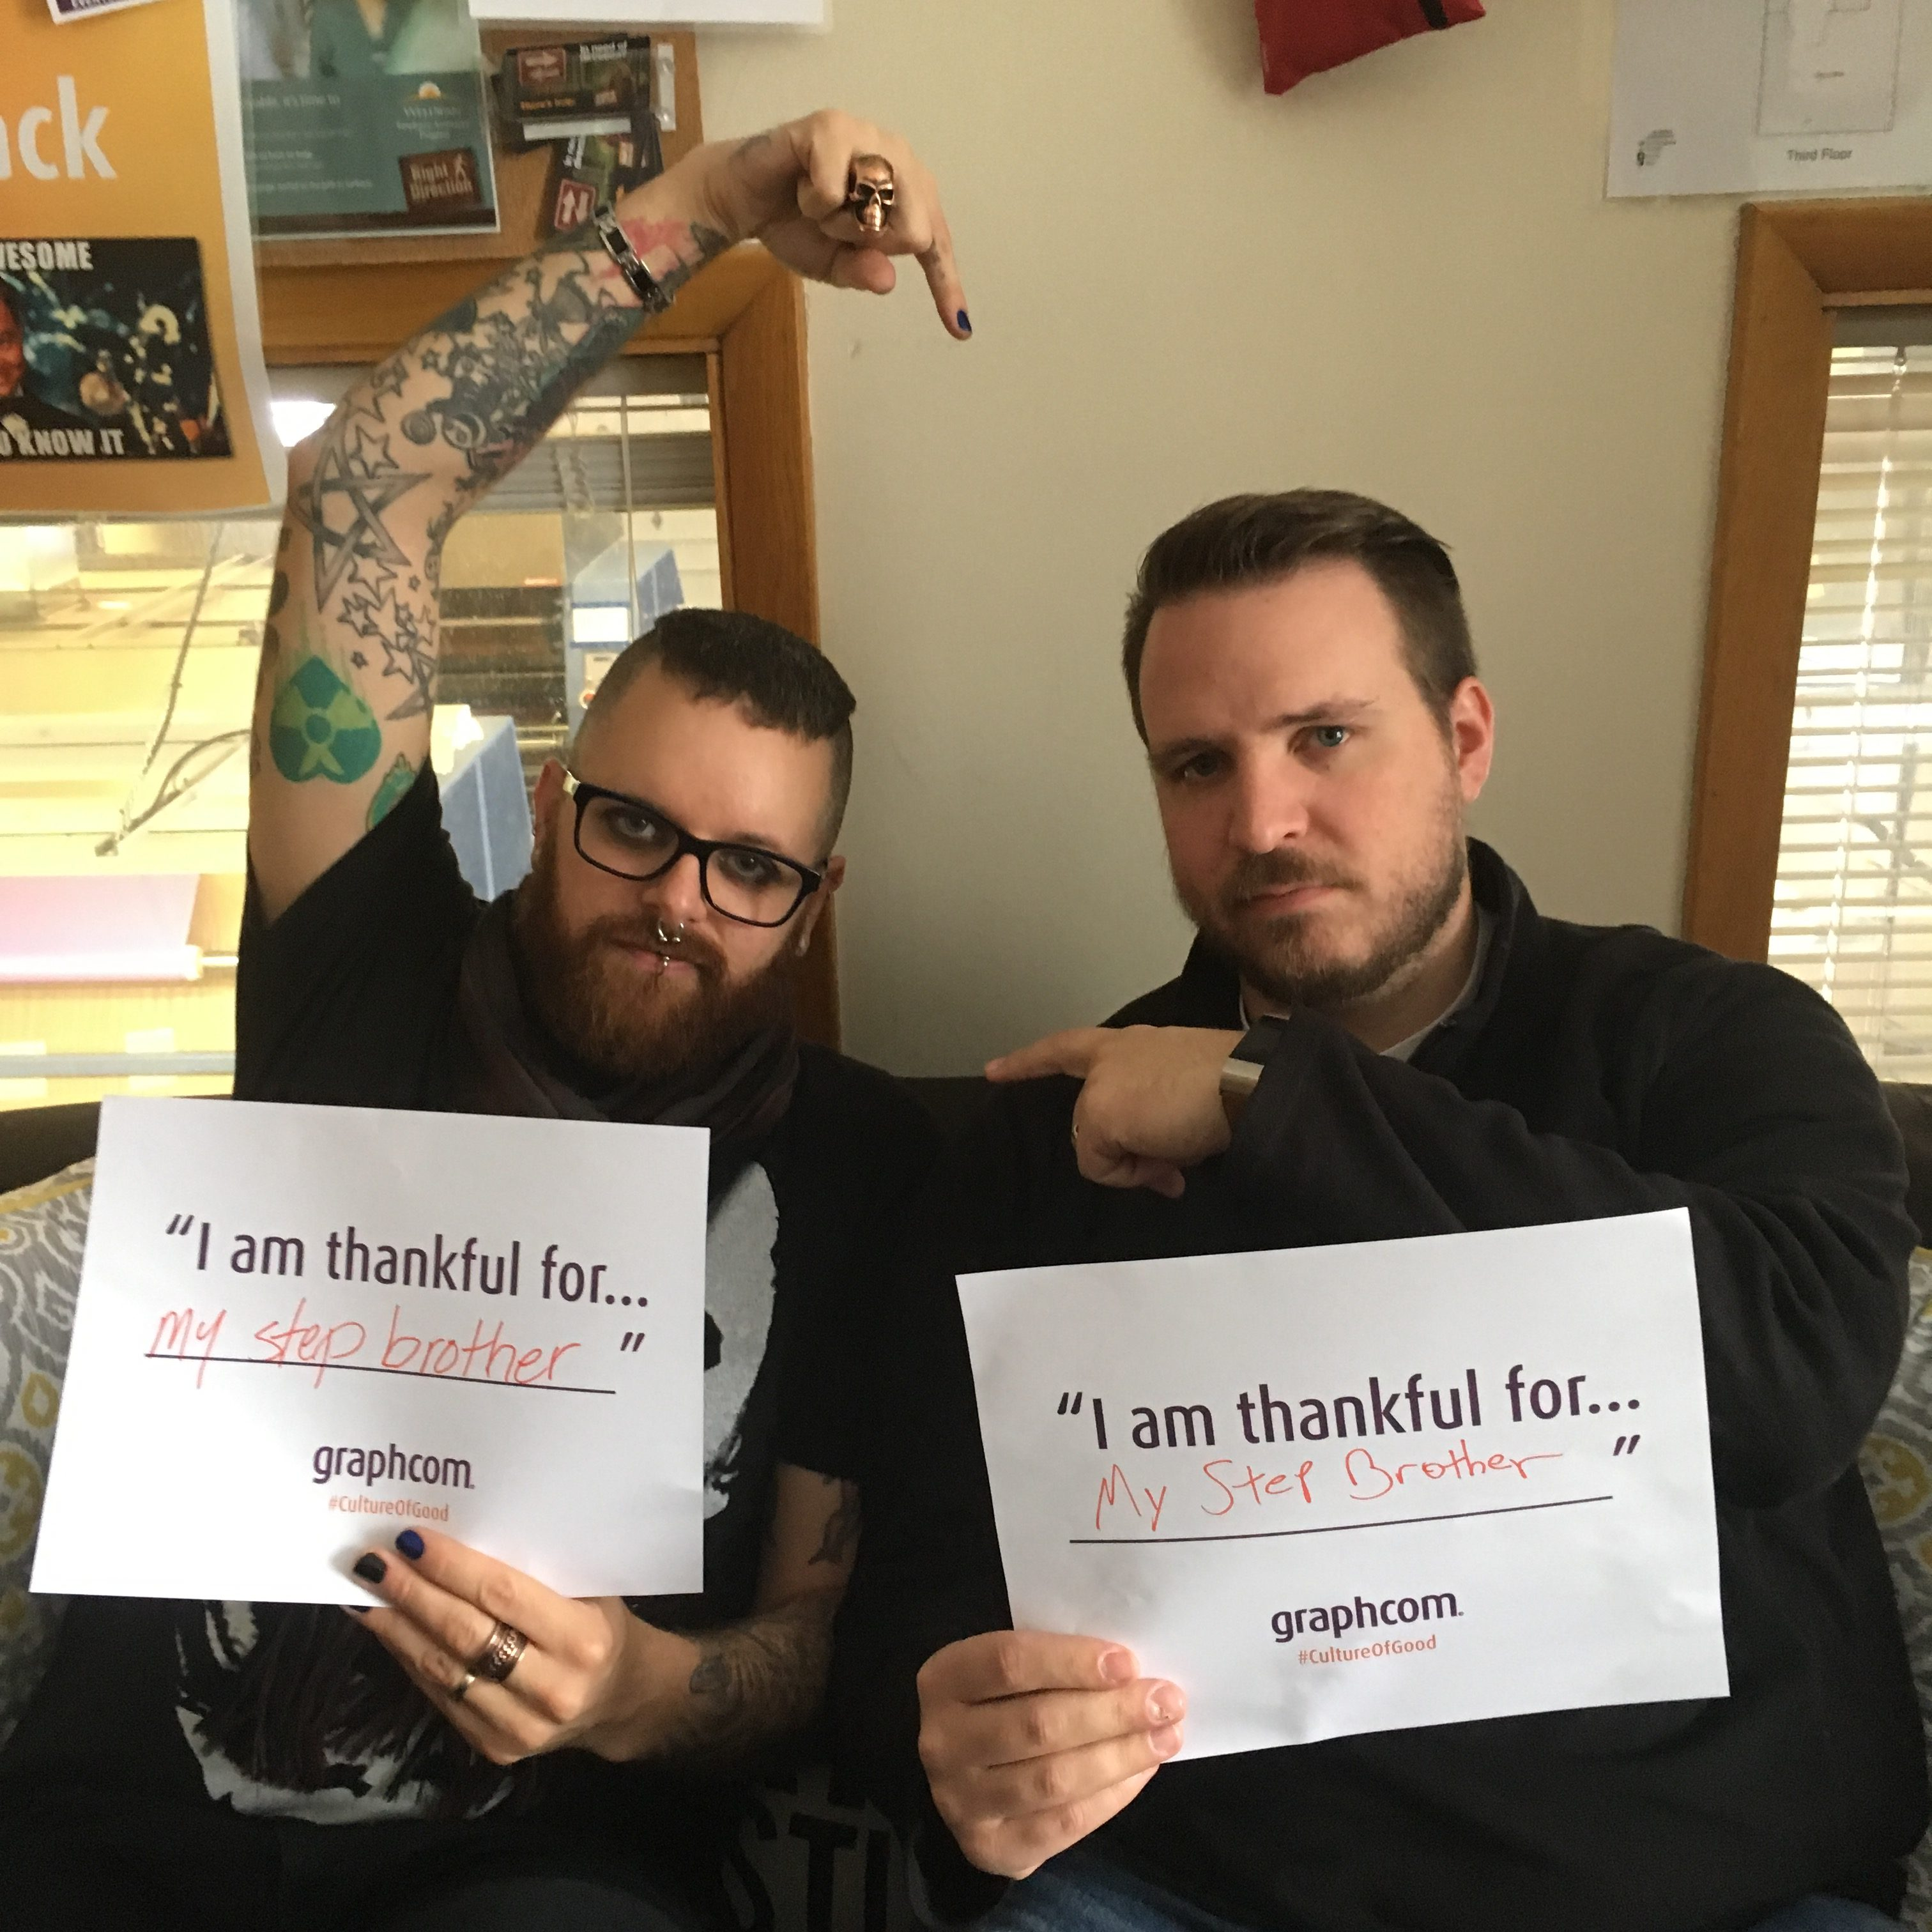 travis and cory thankful